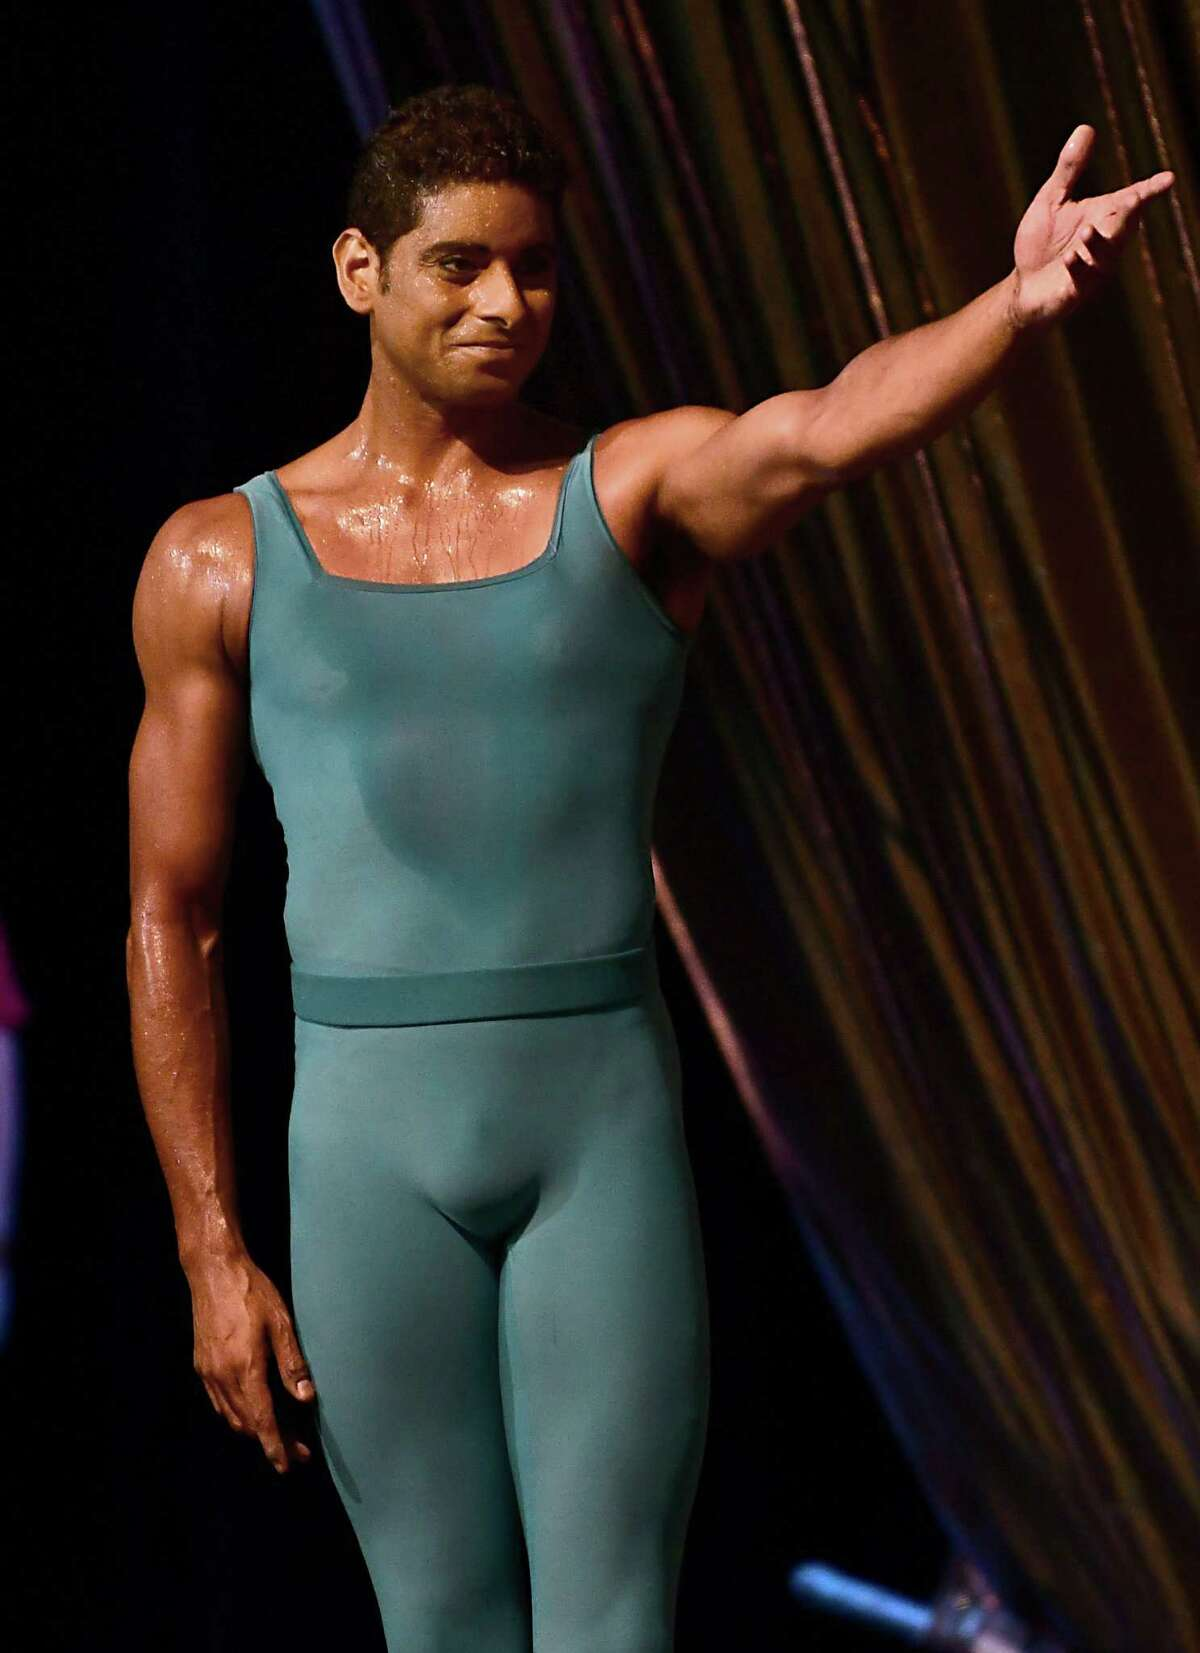 The New York City Ballet dancers perspired due to hot and humid weather at Saratoga Performing Arts Center on Wednesday, July 17, 2019 in Saratoga Springs, N.Y. (Lori Van Buren/Times Union)